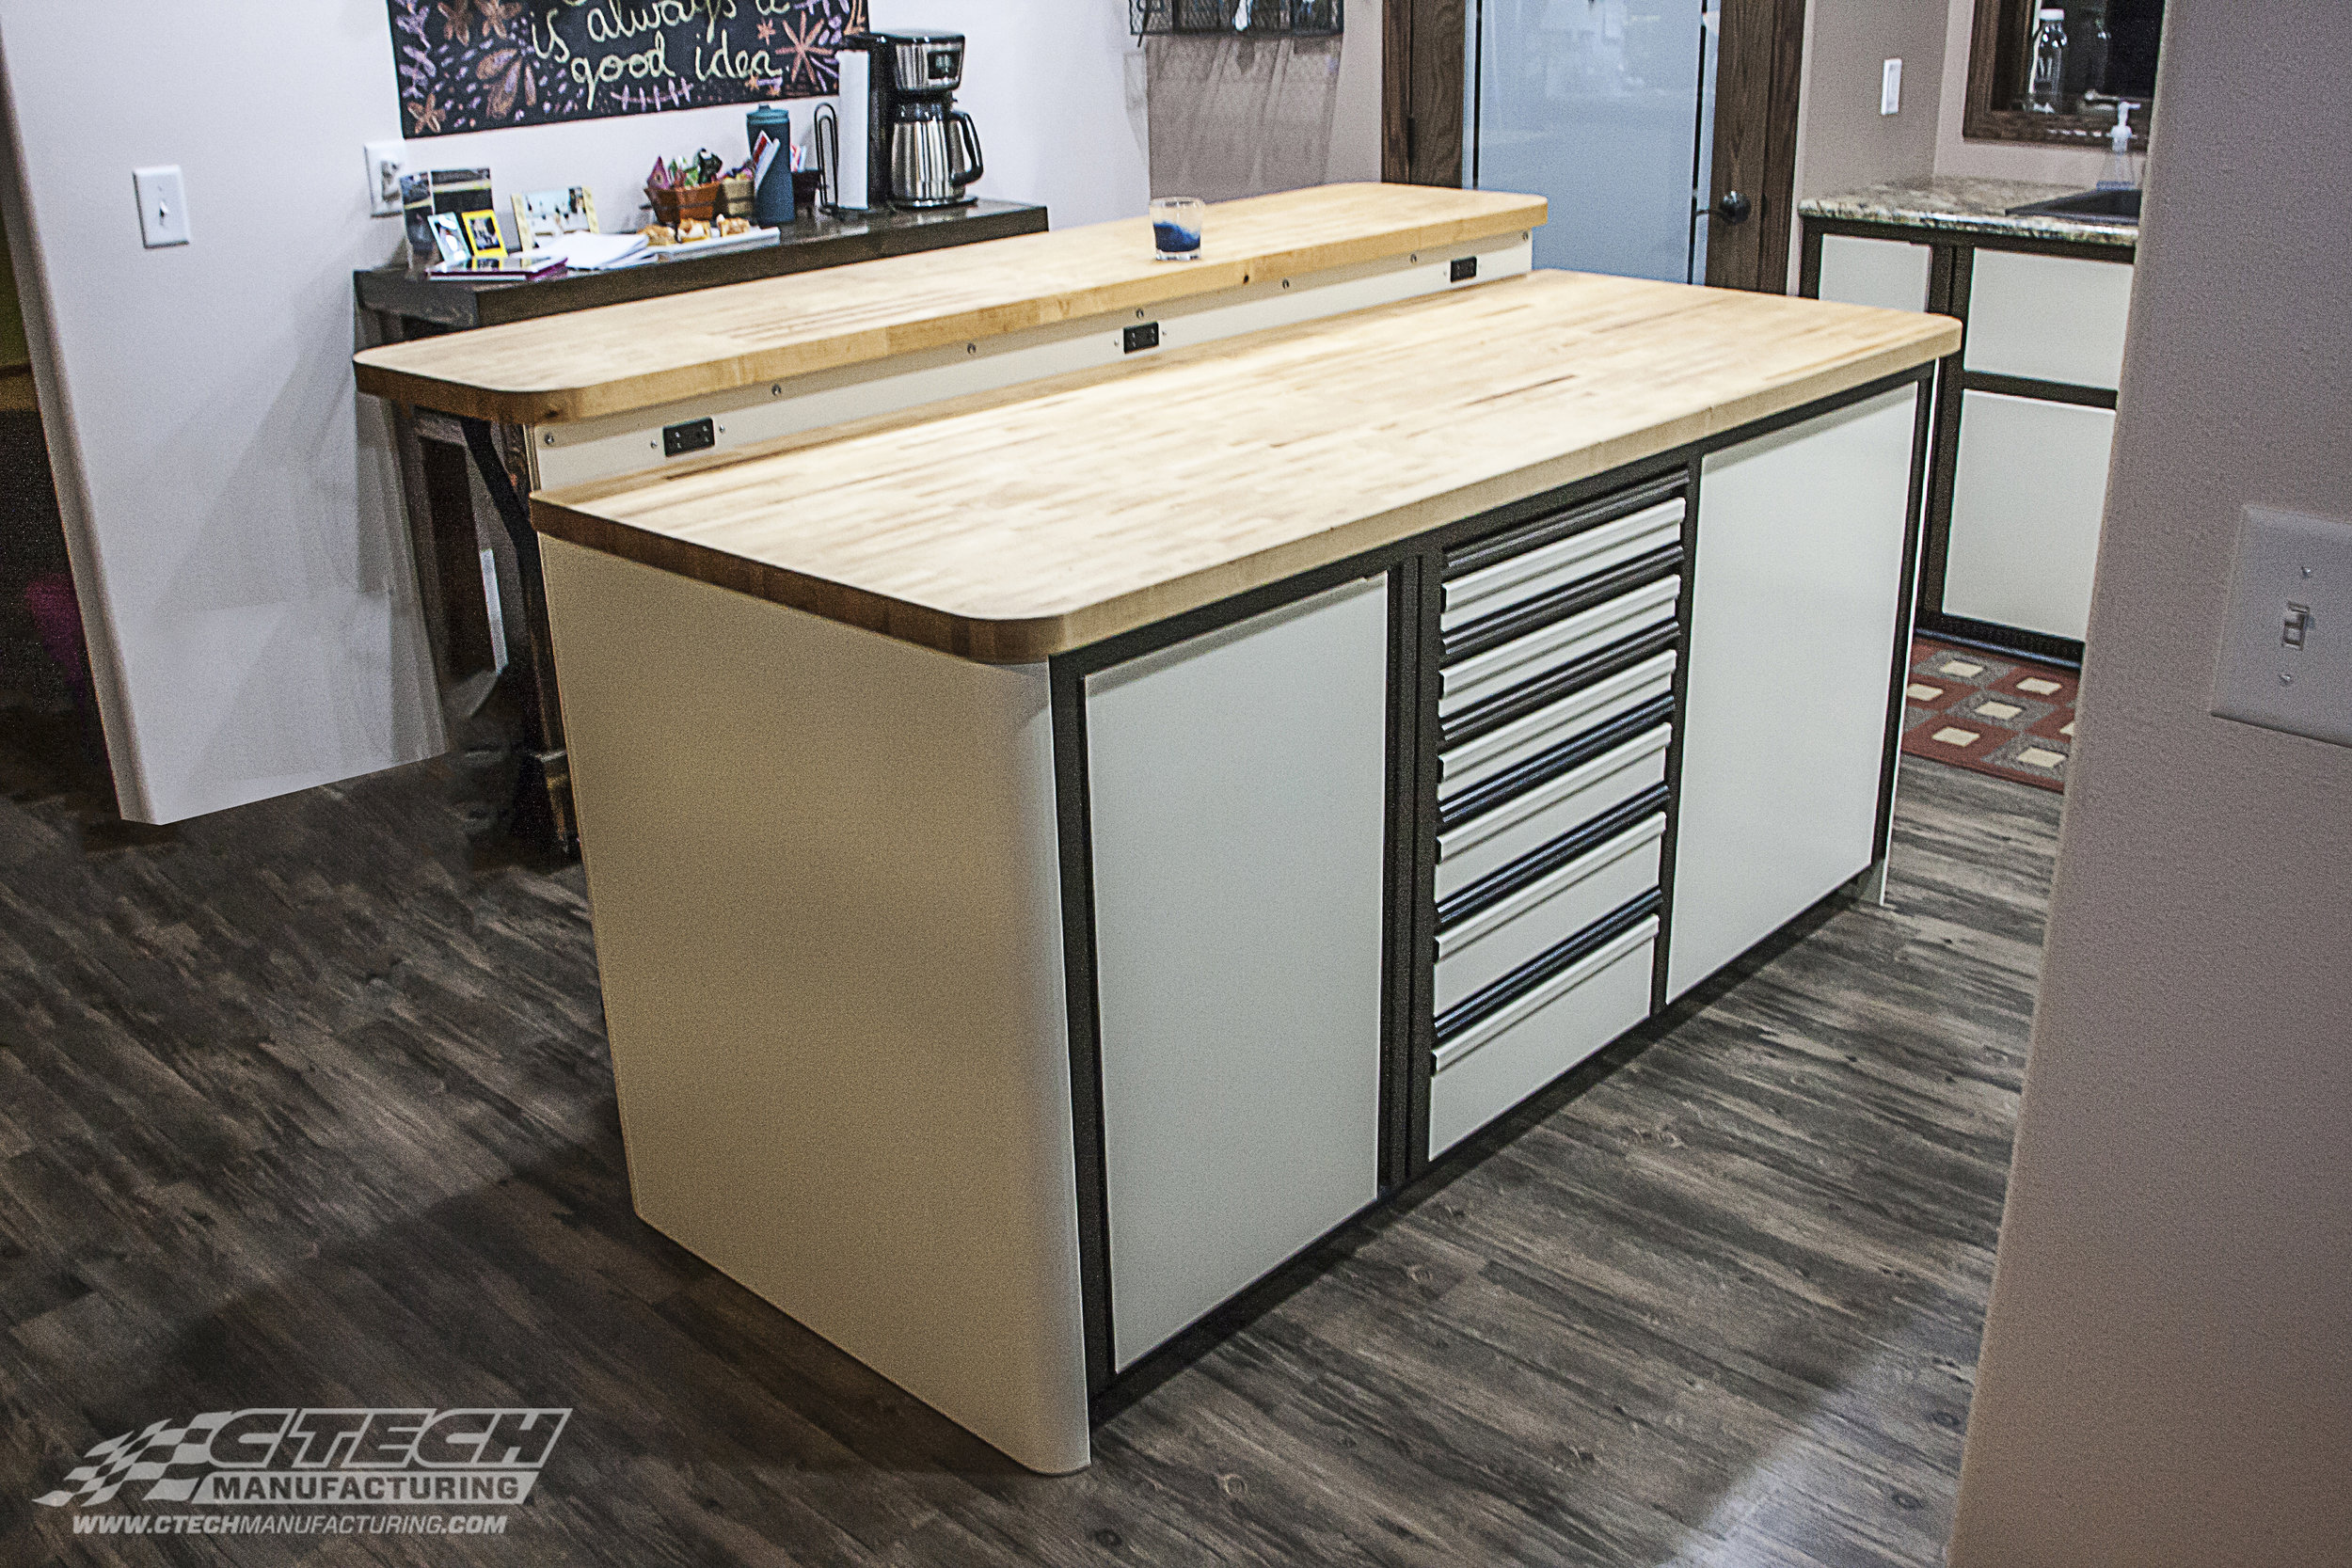 High-tech aluminum cabinets aren't just for the garage or trailer. CTECH cabinets look as good as they perform which means they're an excellent addition to a bath or kitchen space that could benefit from a sleek, modern, and flush-faced storage system.